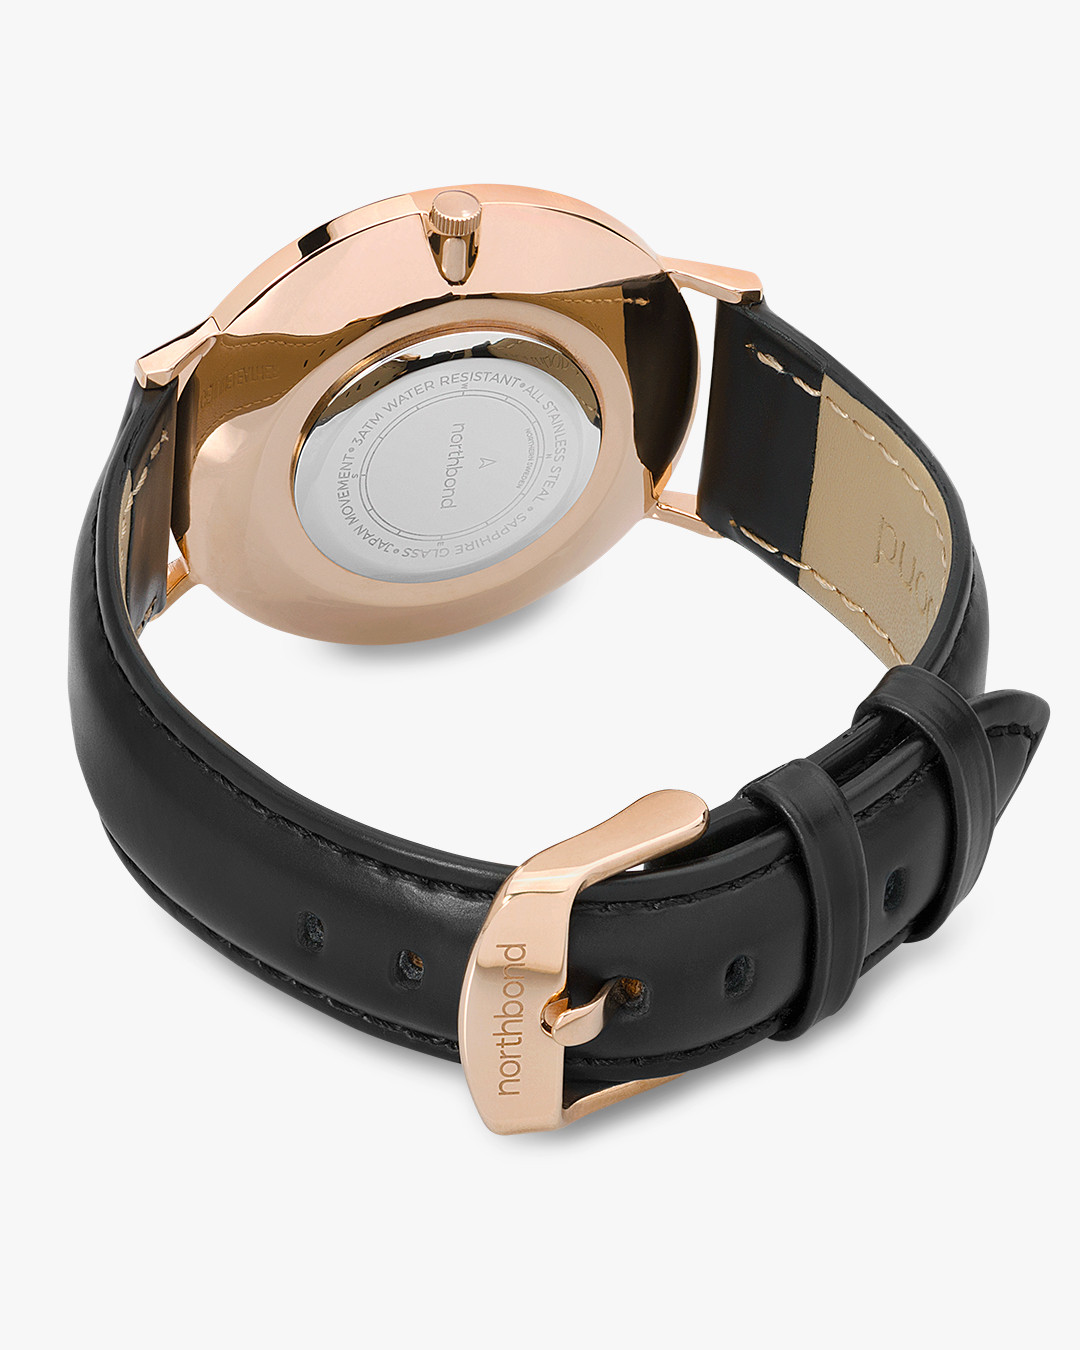 onyx watch rose gold black leather